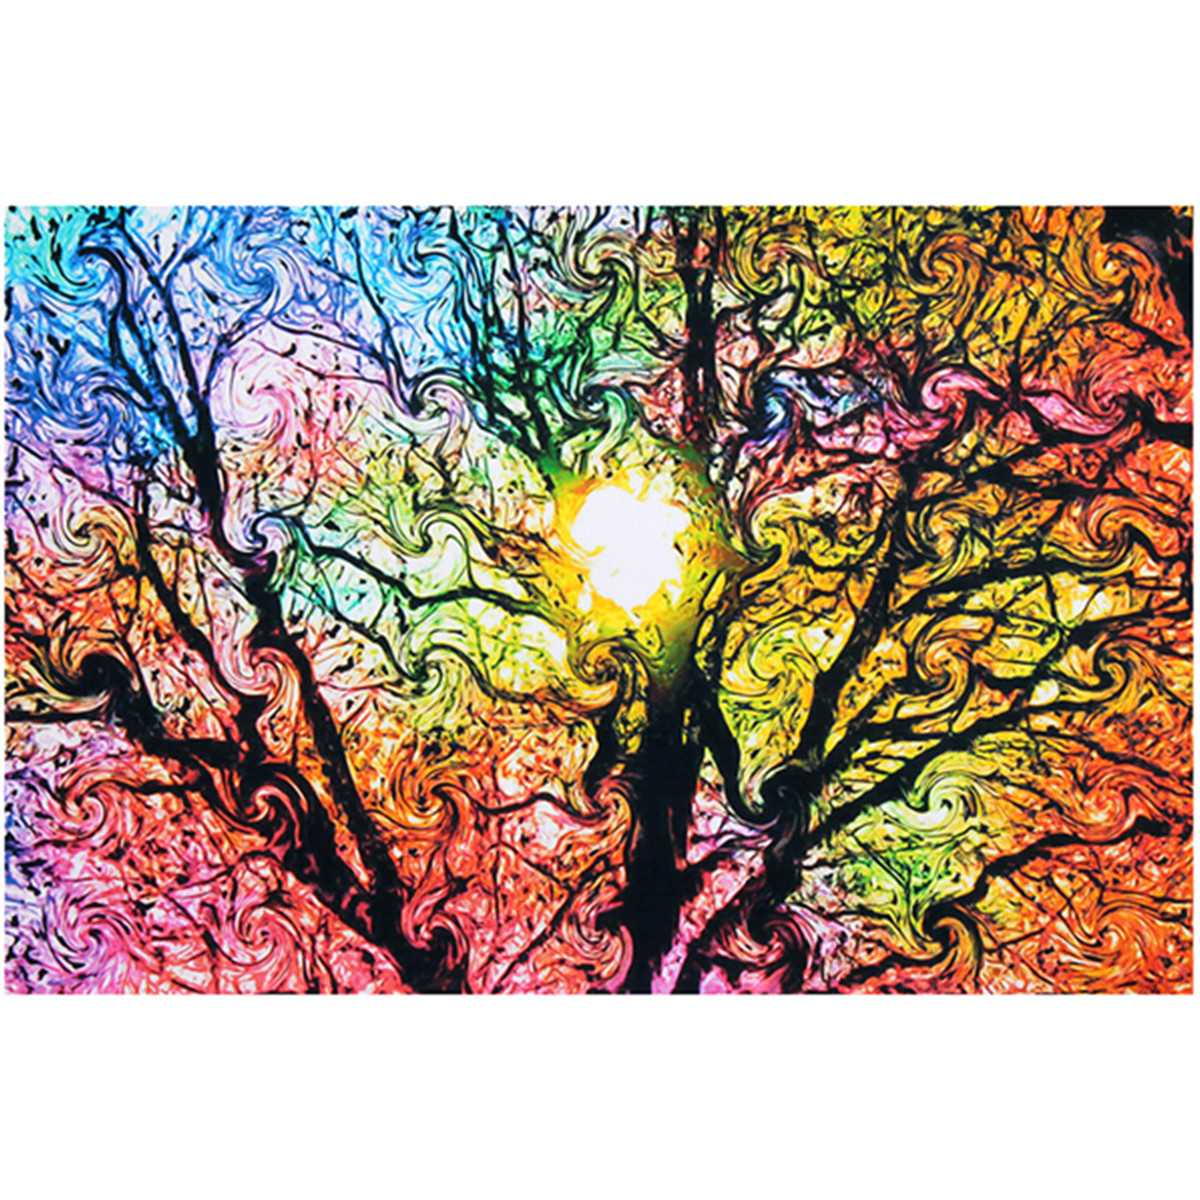 new sun patterns abstract canvas painting nature art picture poster wall picture 33 50cm home. Black Bedroom Furniture Sets. Home Design Ideas